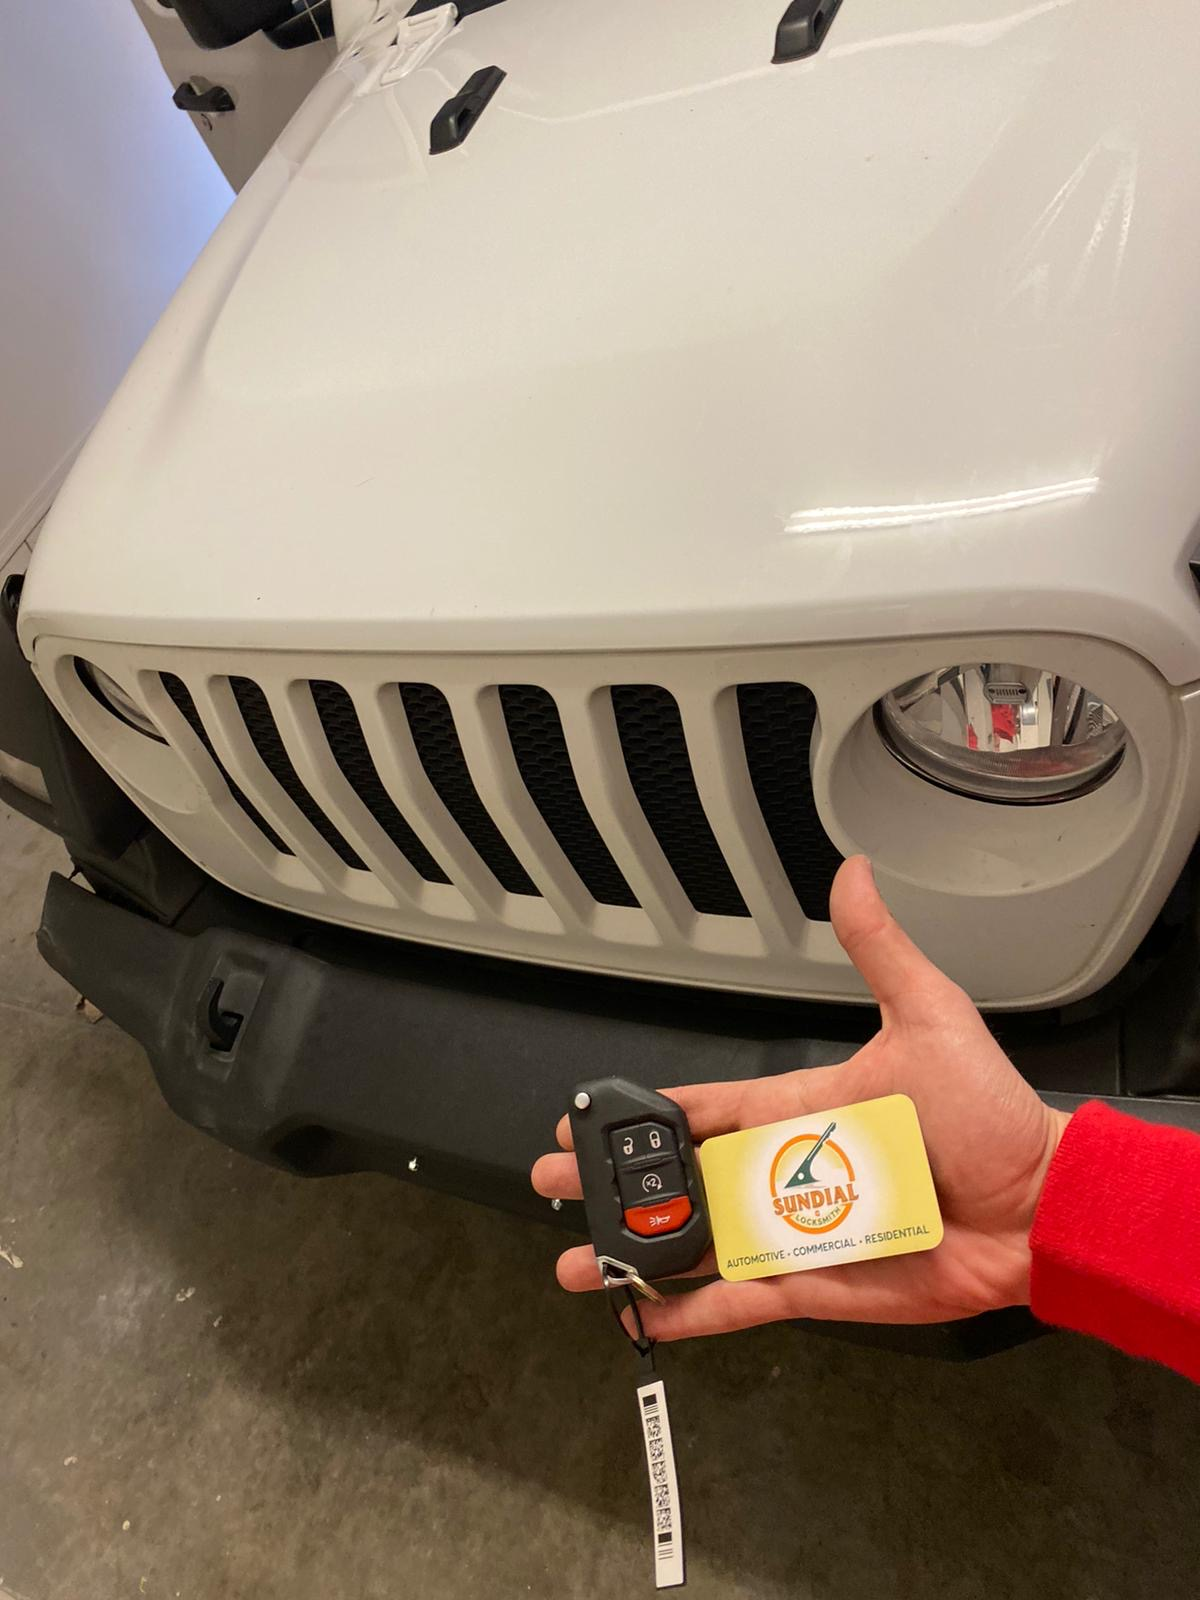 jeep key replacement near me